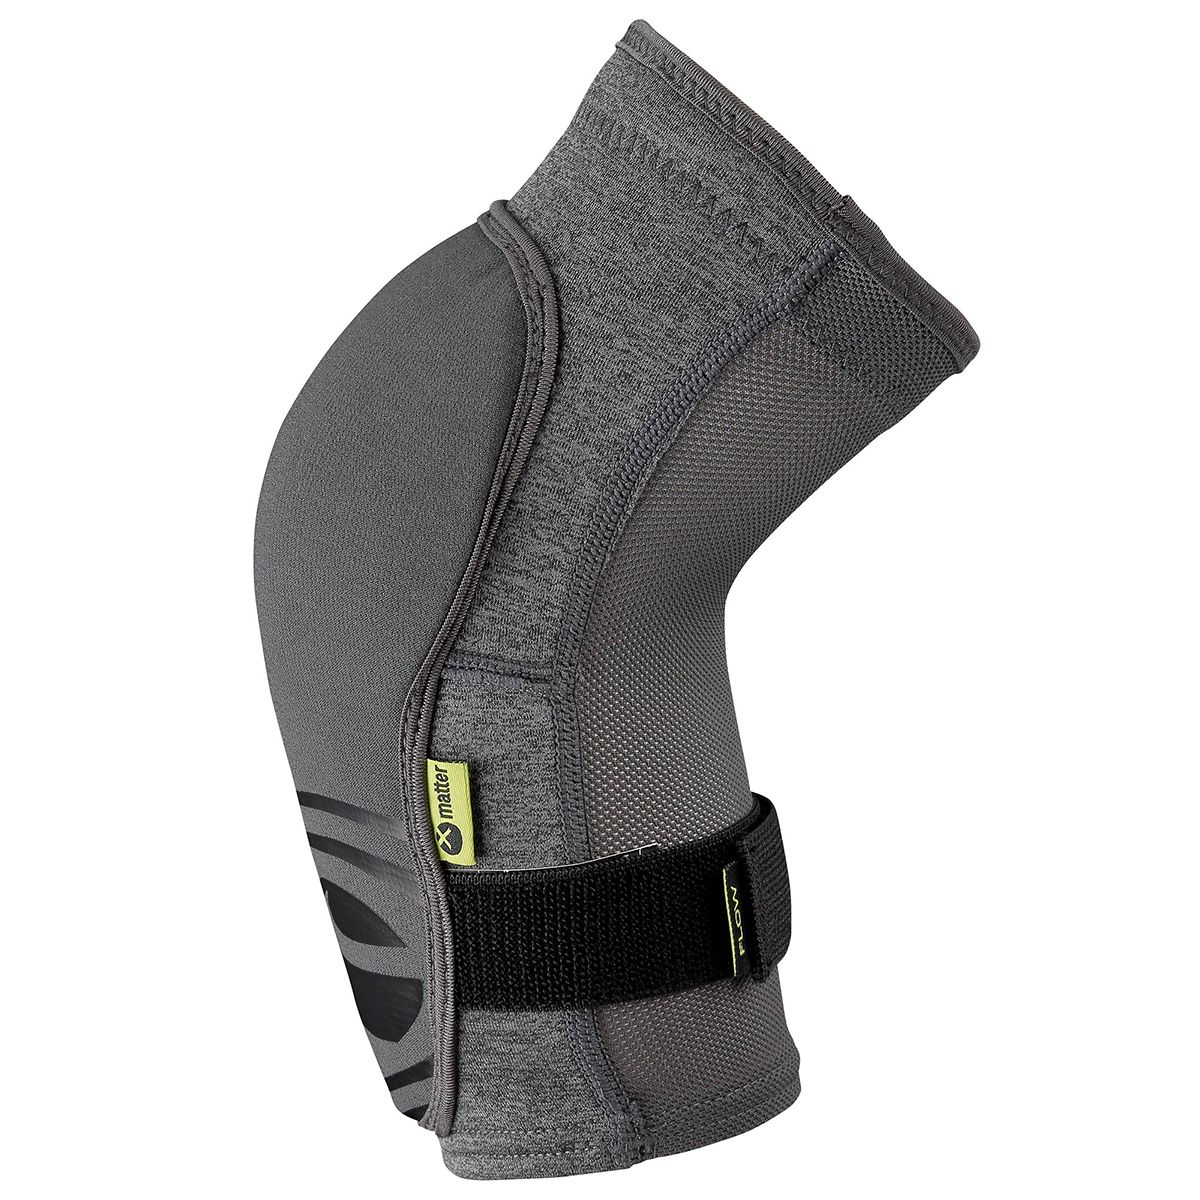 FLOW EVO+ ELBOW pads